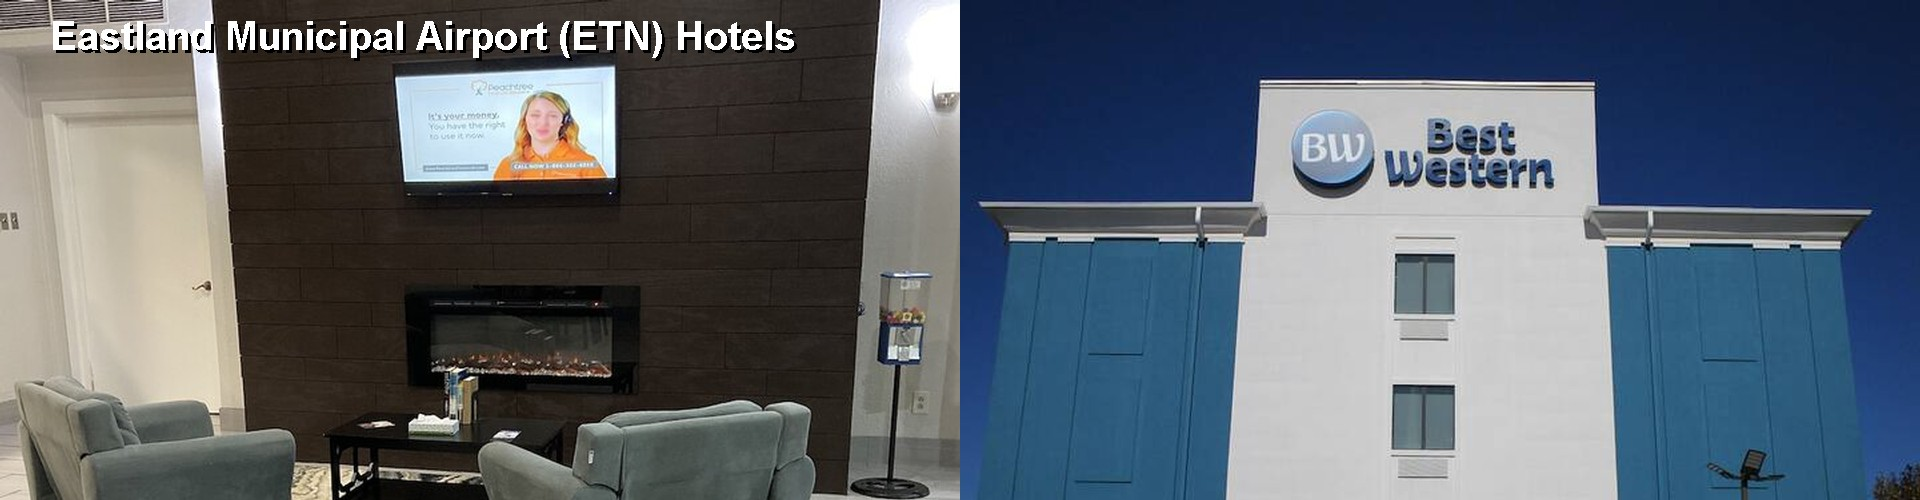 3 Best Hotels near Eastland Municipal Airport (ETN)